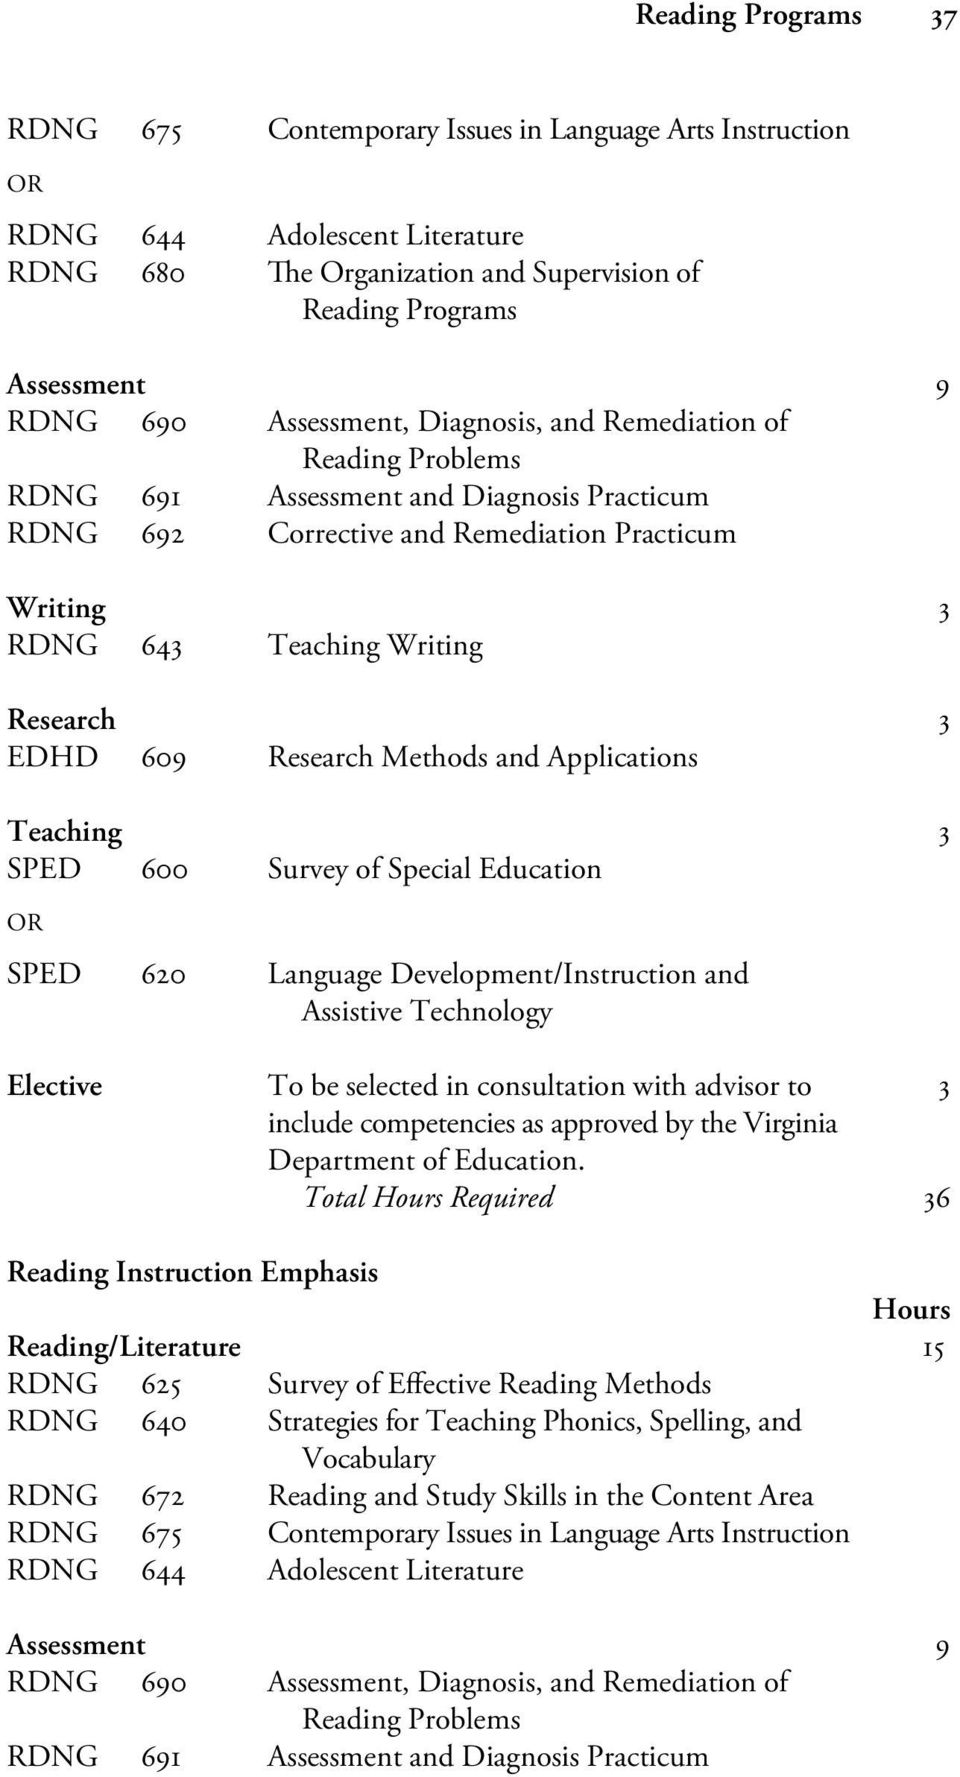 EDHD 609 Research Methods and Applications Teaching 3 SPED 600 Survey of Special Education OR SPED 620 Language Development/Instruction and Assistive Technology Elective To be selected in